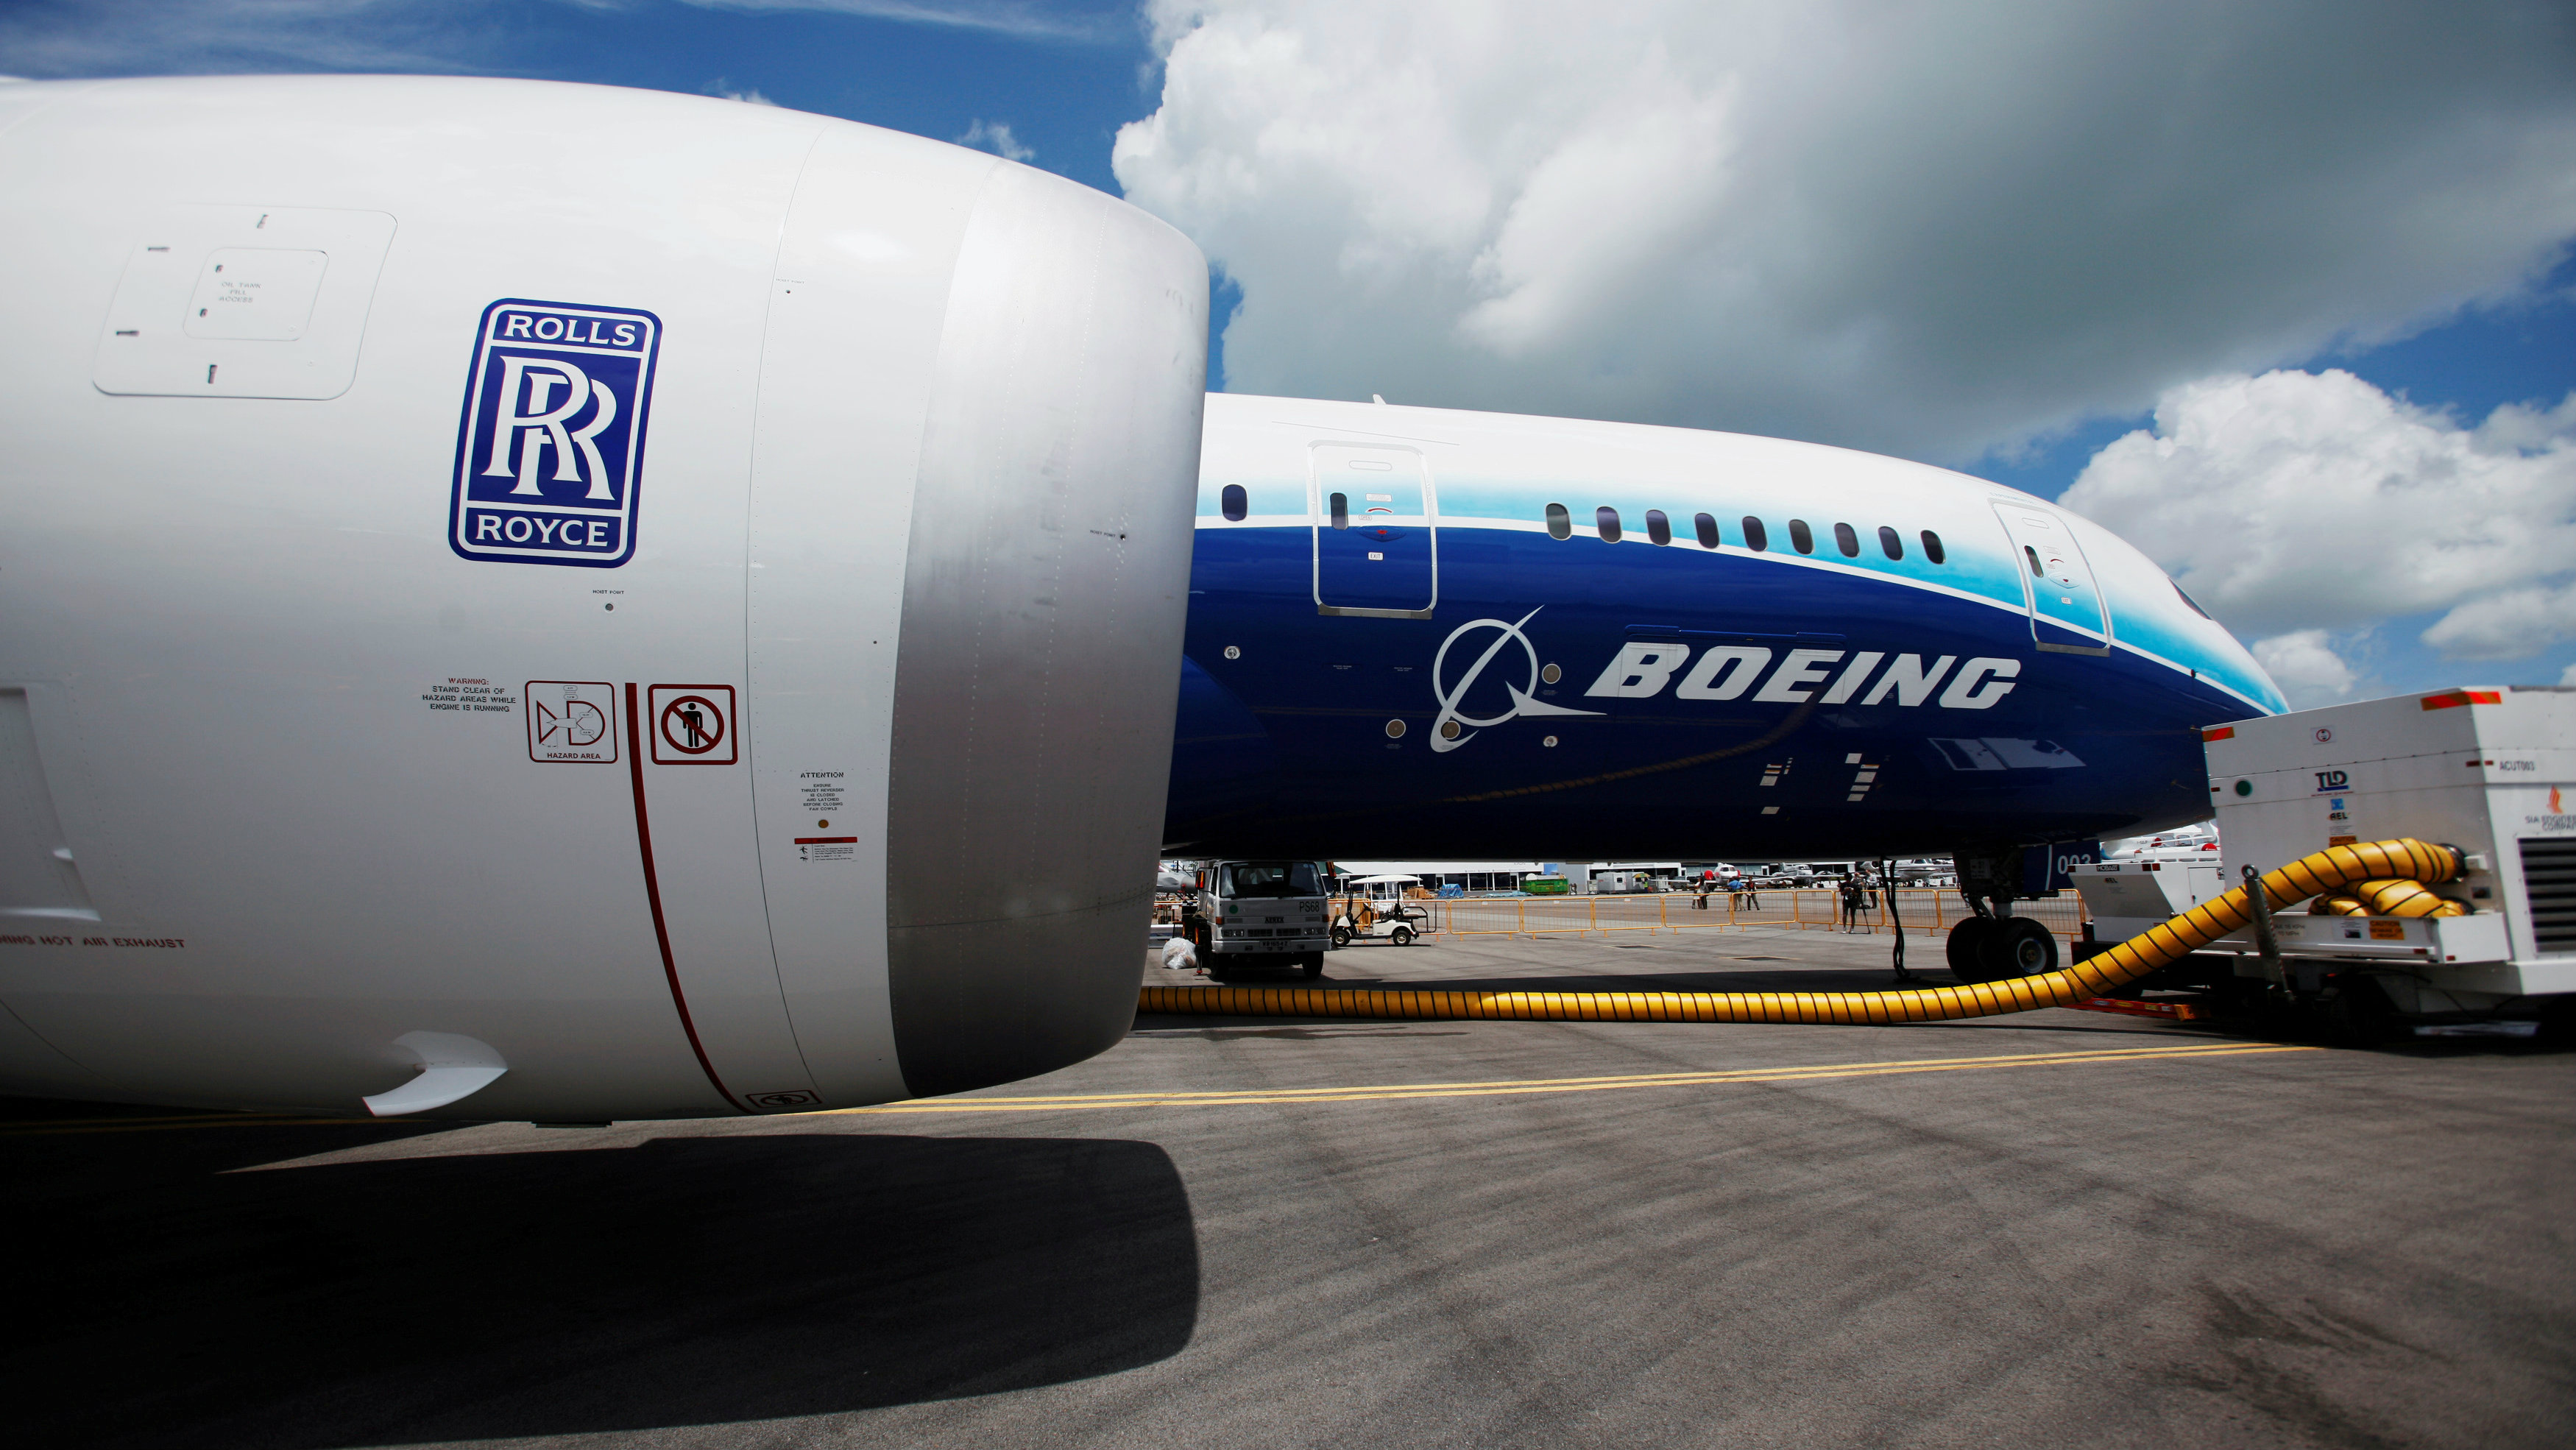 boeing 787 dreamliner how the aircraft s engine problems might rh qz com boeing 737 maintenance manual pdf boeing 787 dreamliner maintenance manual